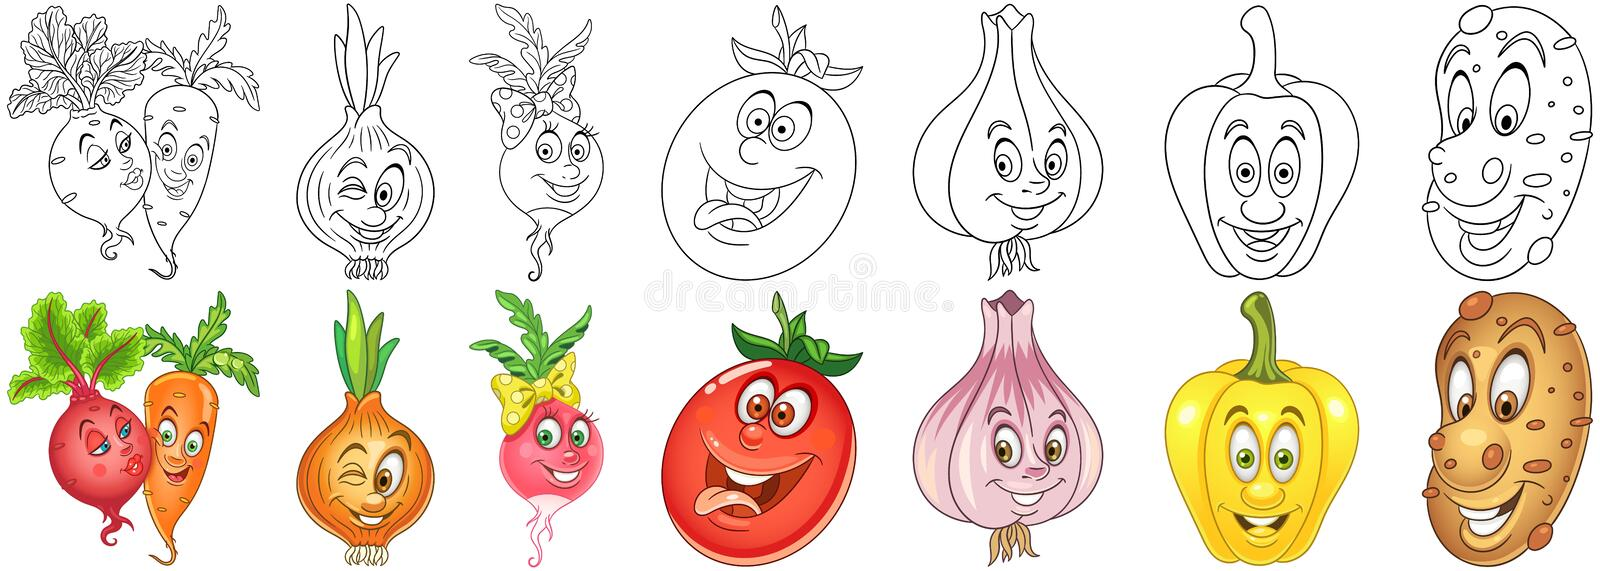 Cartoon Vegetables set royalty free illustration